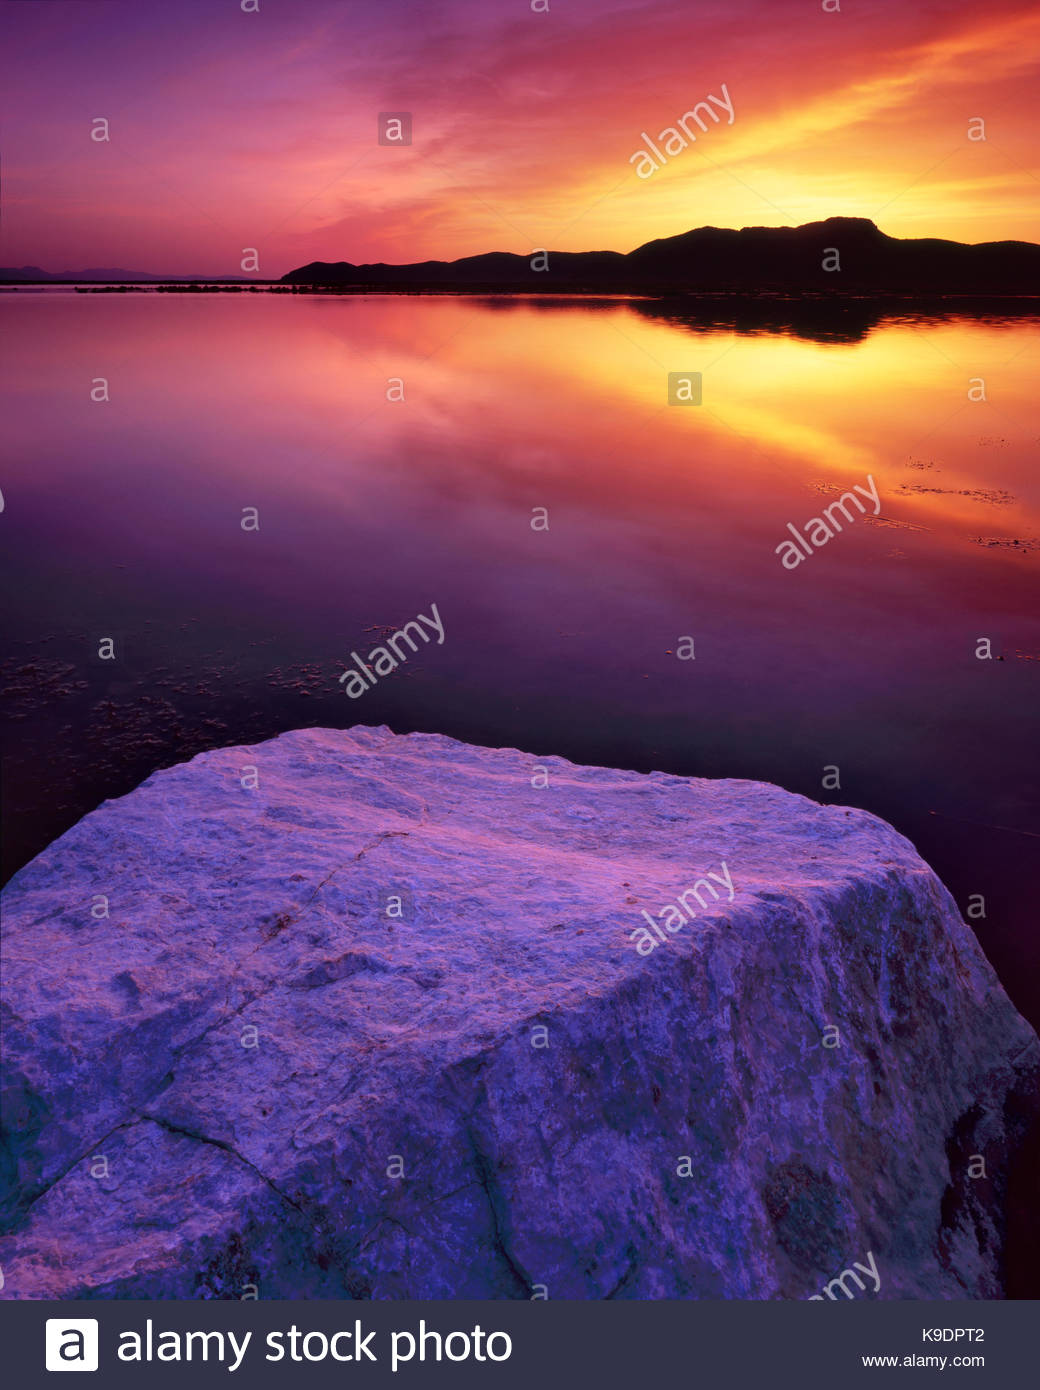 Rock and Lake at Dawn, Ruby Lake National Wildlife Refuge, Nevada - Stock Image